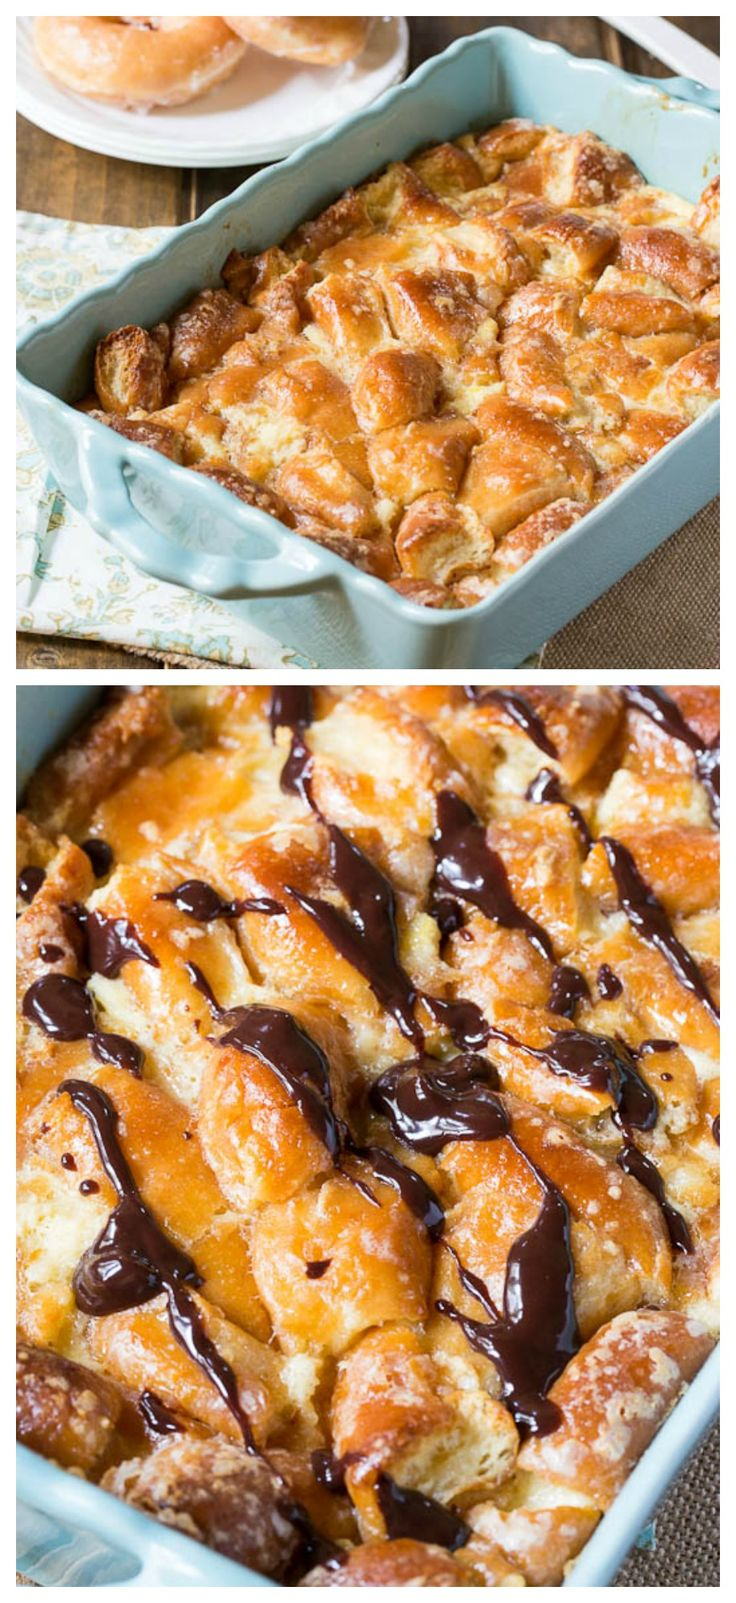 Turn stale glazed donuts into Krispy Kreme Bread Pudding with chocolate sauce.